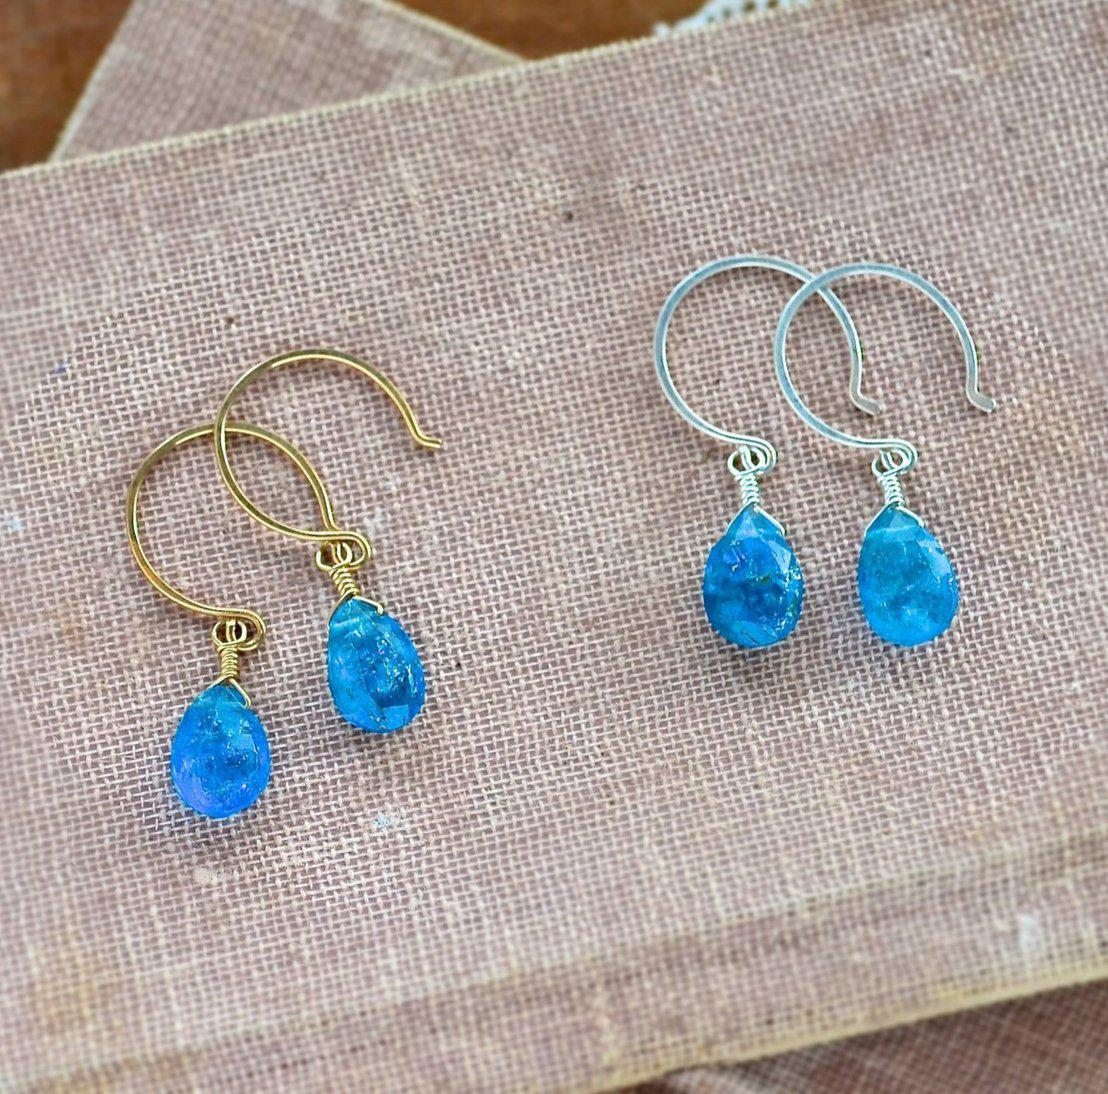 danielle brass kendra categories in lg jewelry default apatite aqua earrings scott statement